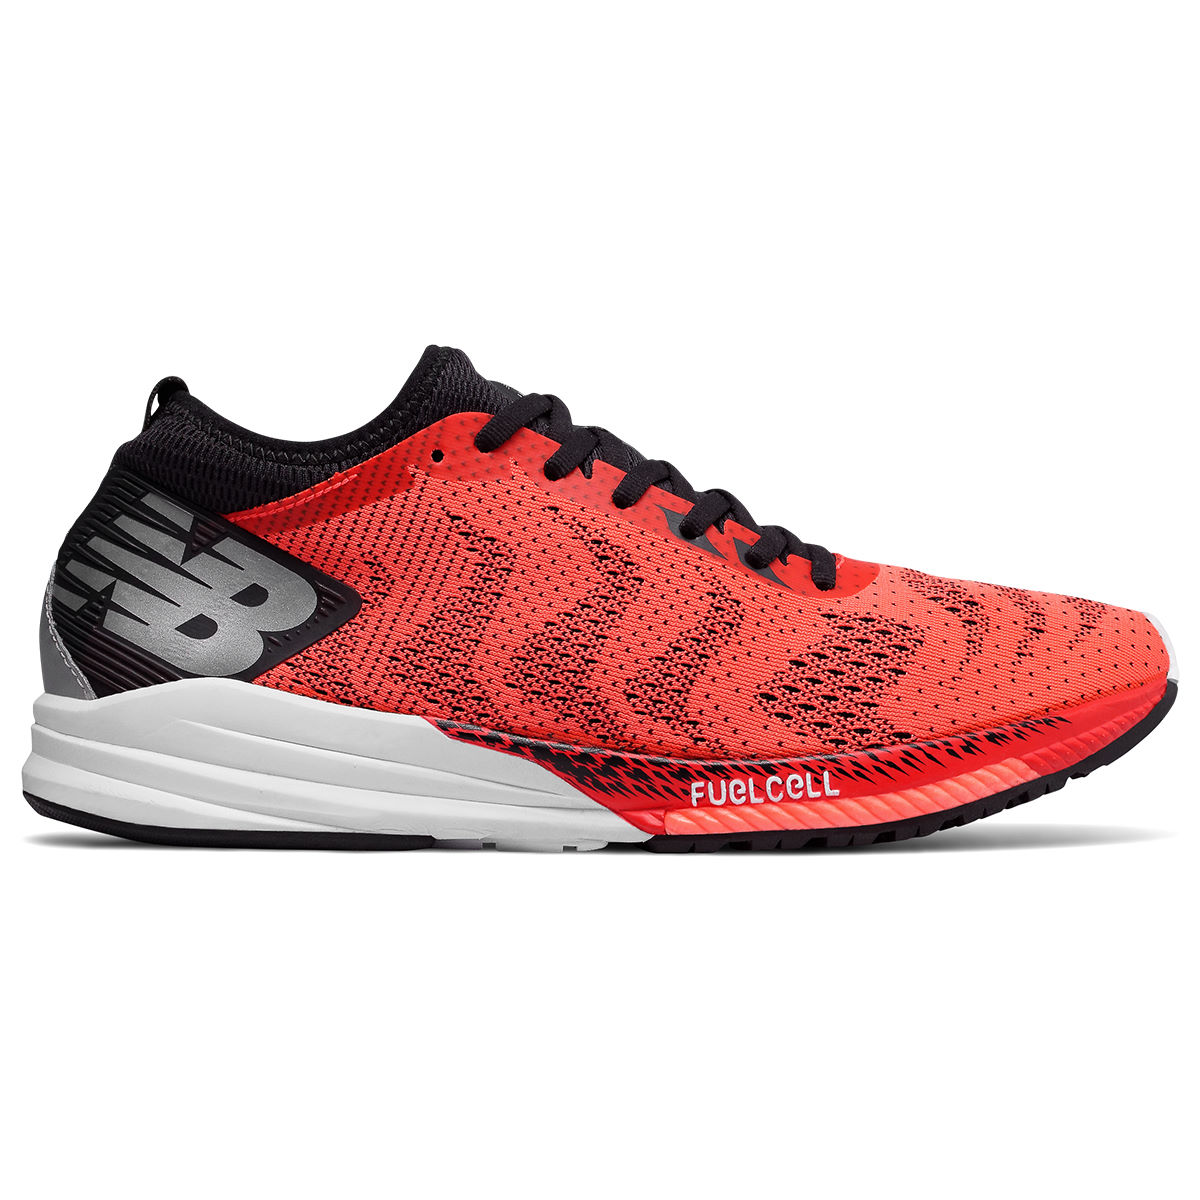 New Balance Fuelcell Impulse Shoes   Running Shoes